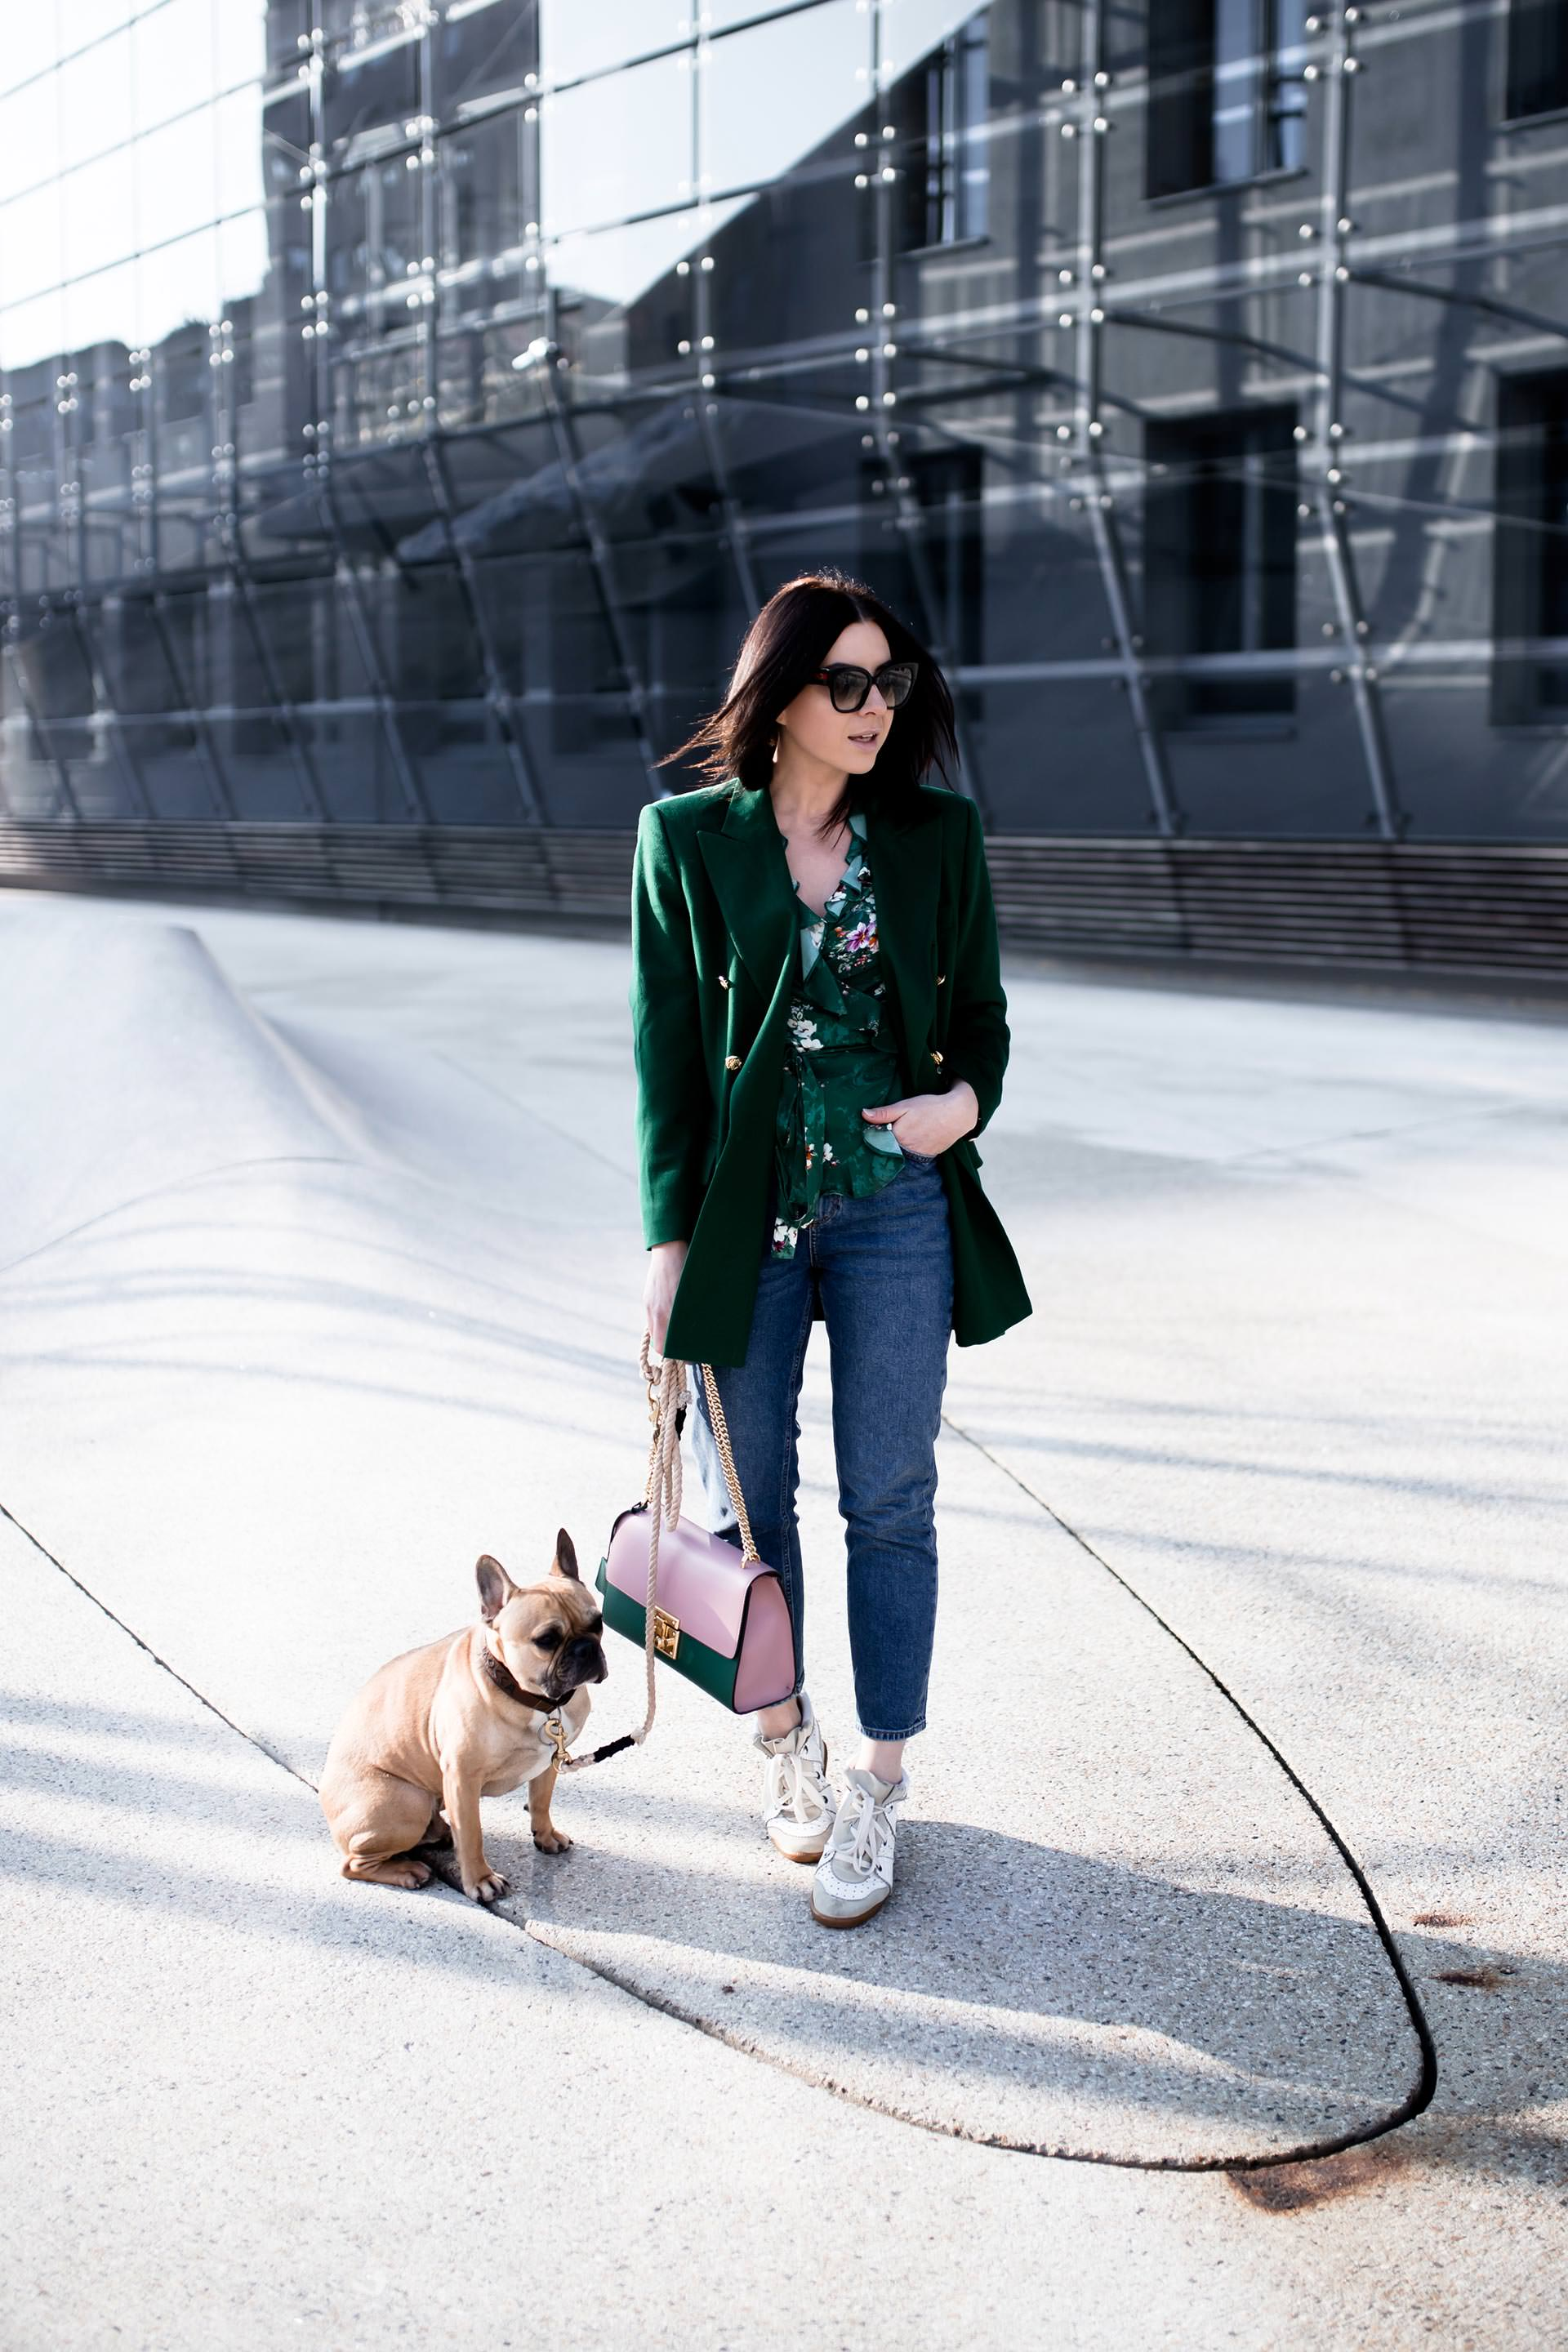 Mom Jeans Outfit kombinieren, Mom Jeans Style Guide, Outfit Ideen mit Mom jeans, grüner Escada Vintage Blazer, Isabel Marant Bobby Sneakers kombinieren, Gucci Padlock Tasche in Grün und Rosa, Streetstyle einer Fashionbloggerin, Casual Chic Basics, www.whoismocca.com